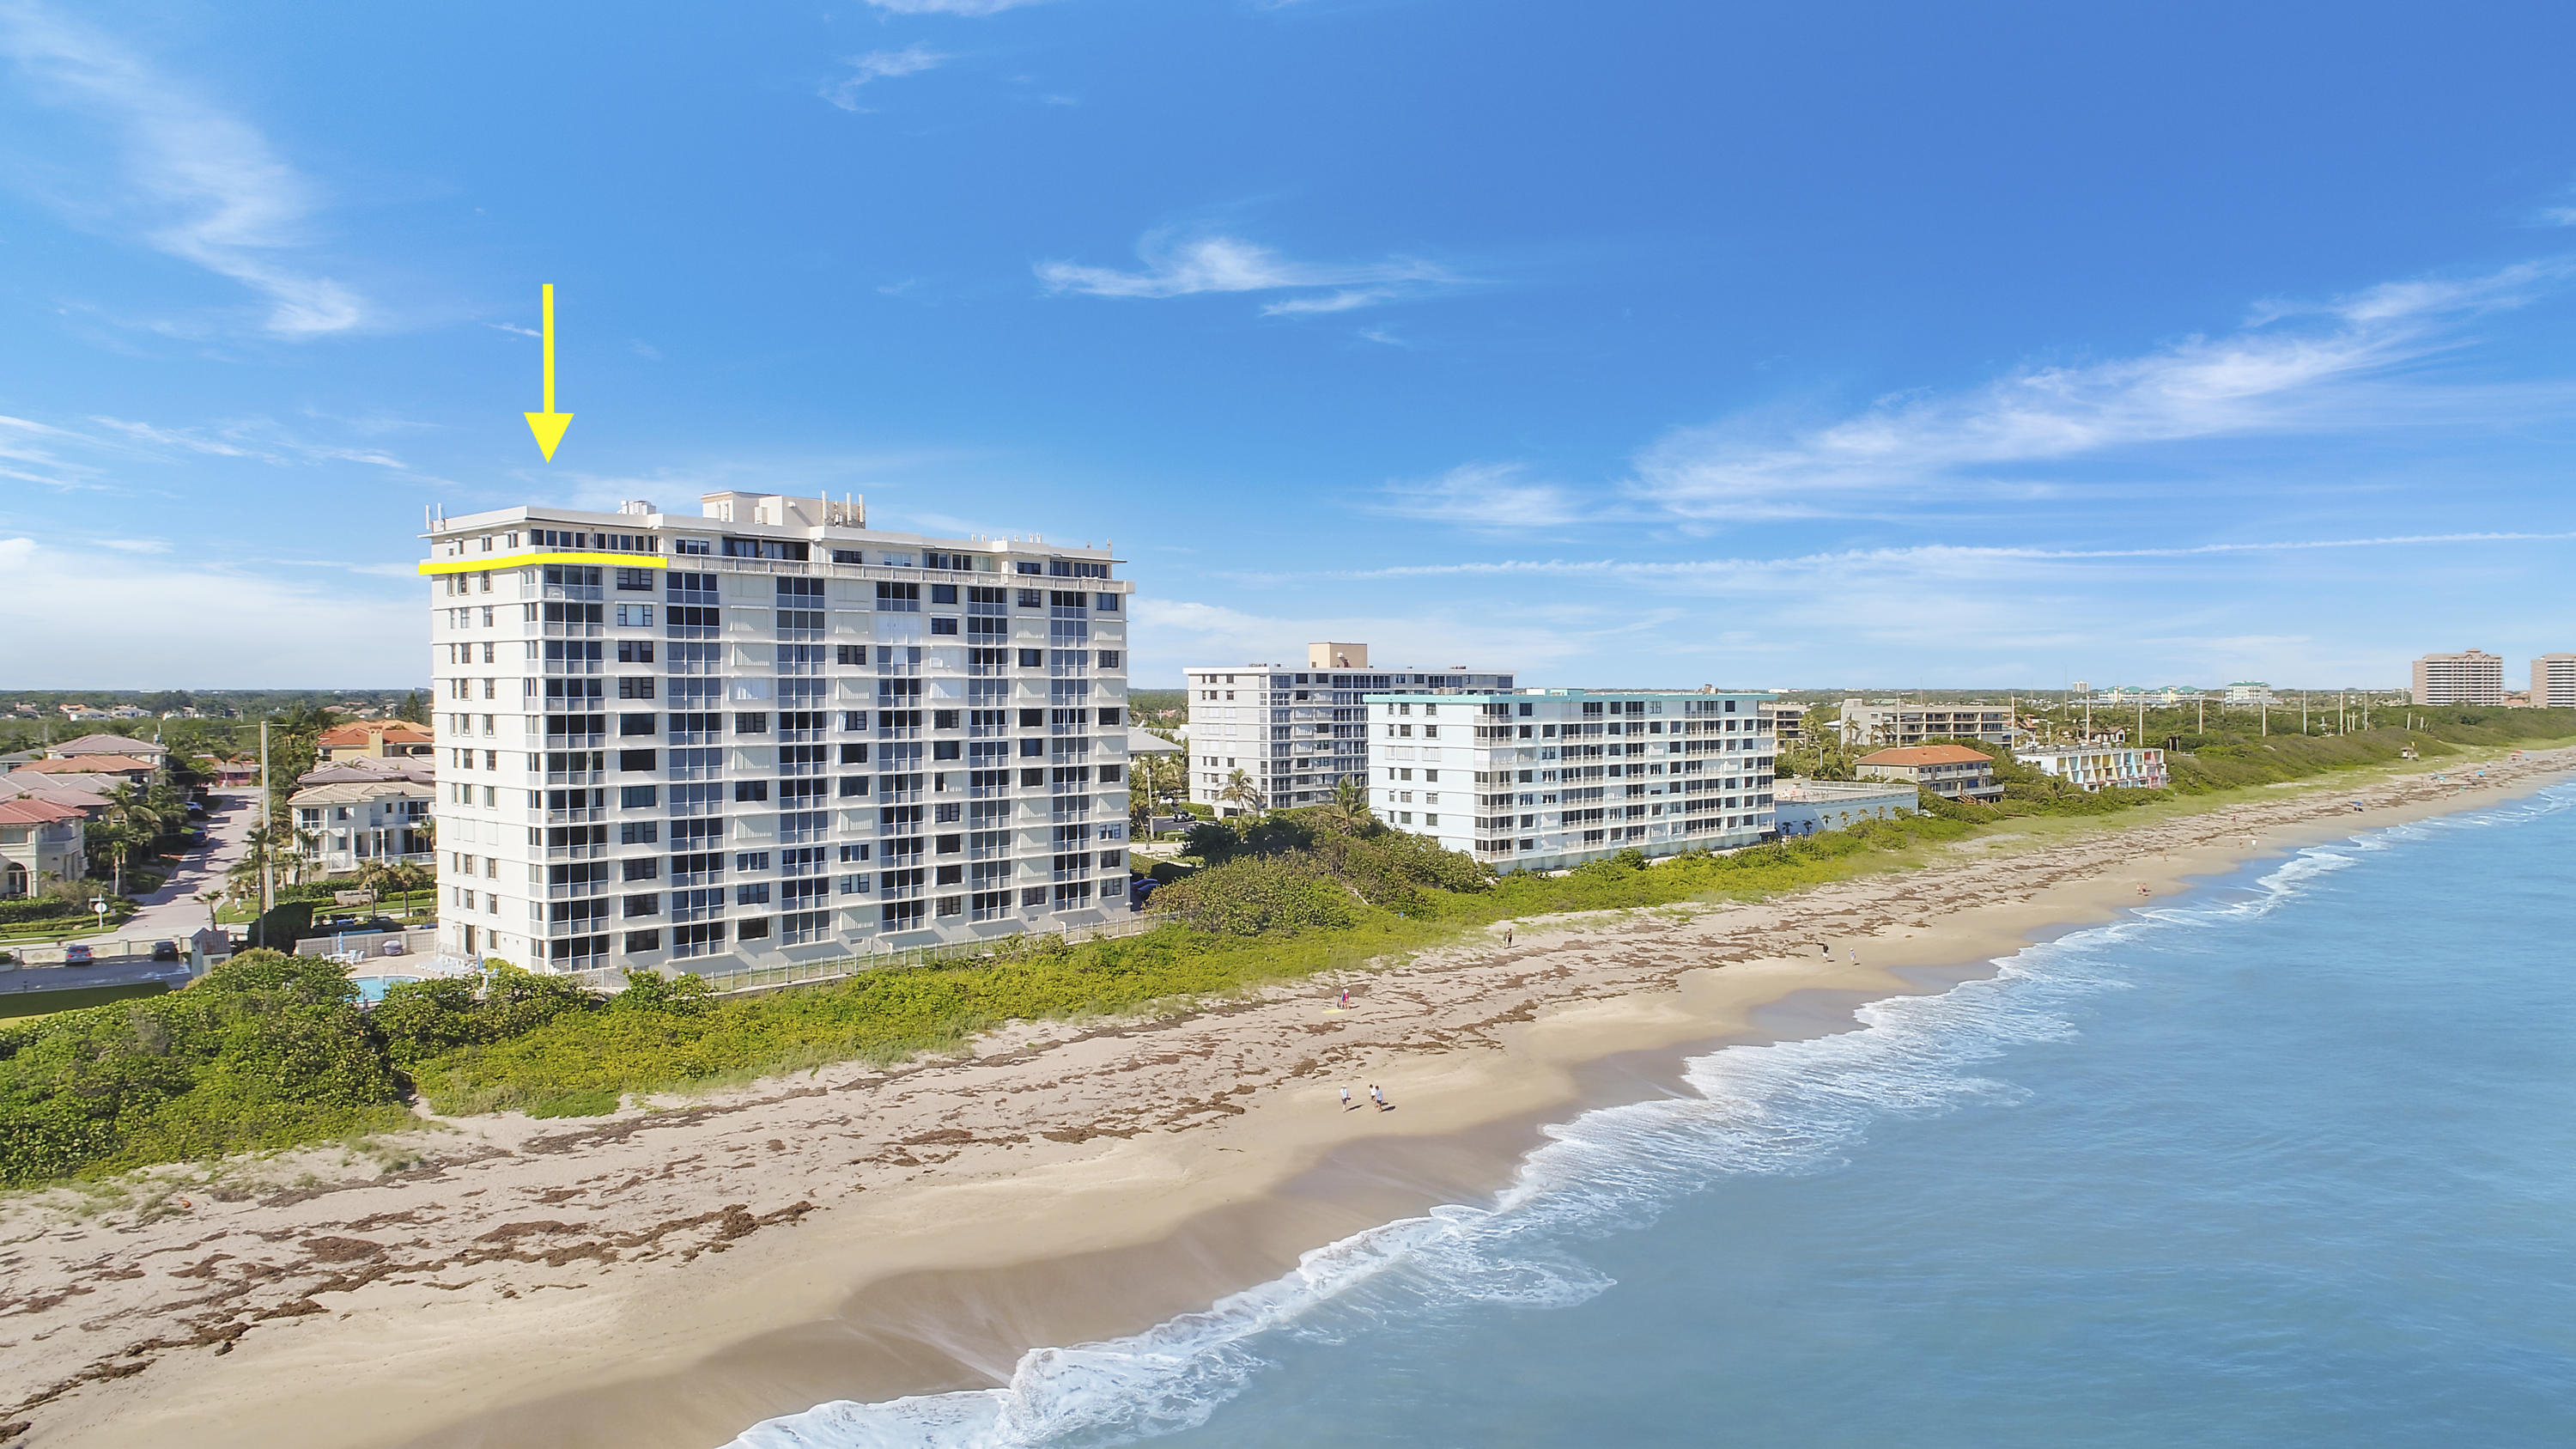 New Home for sale at 840 Ocean Drive in Juno Beach